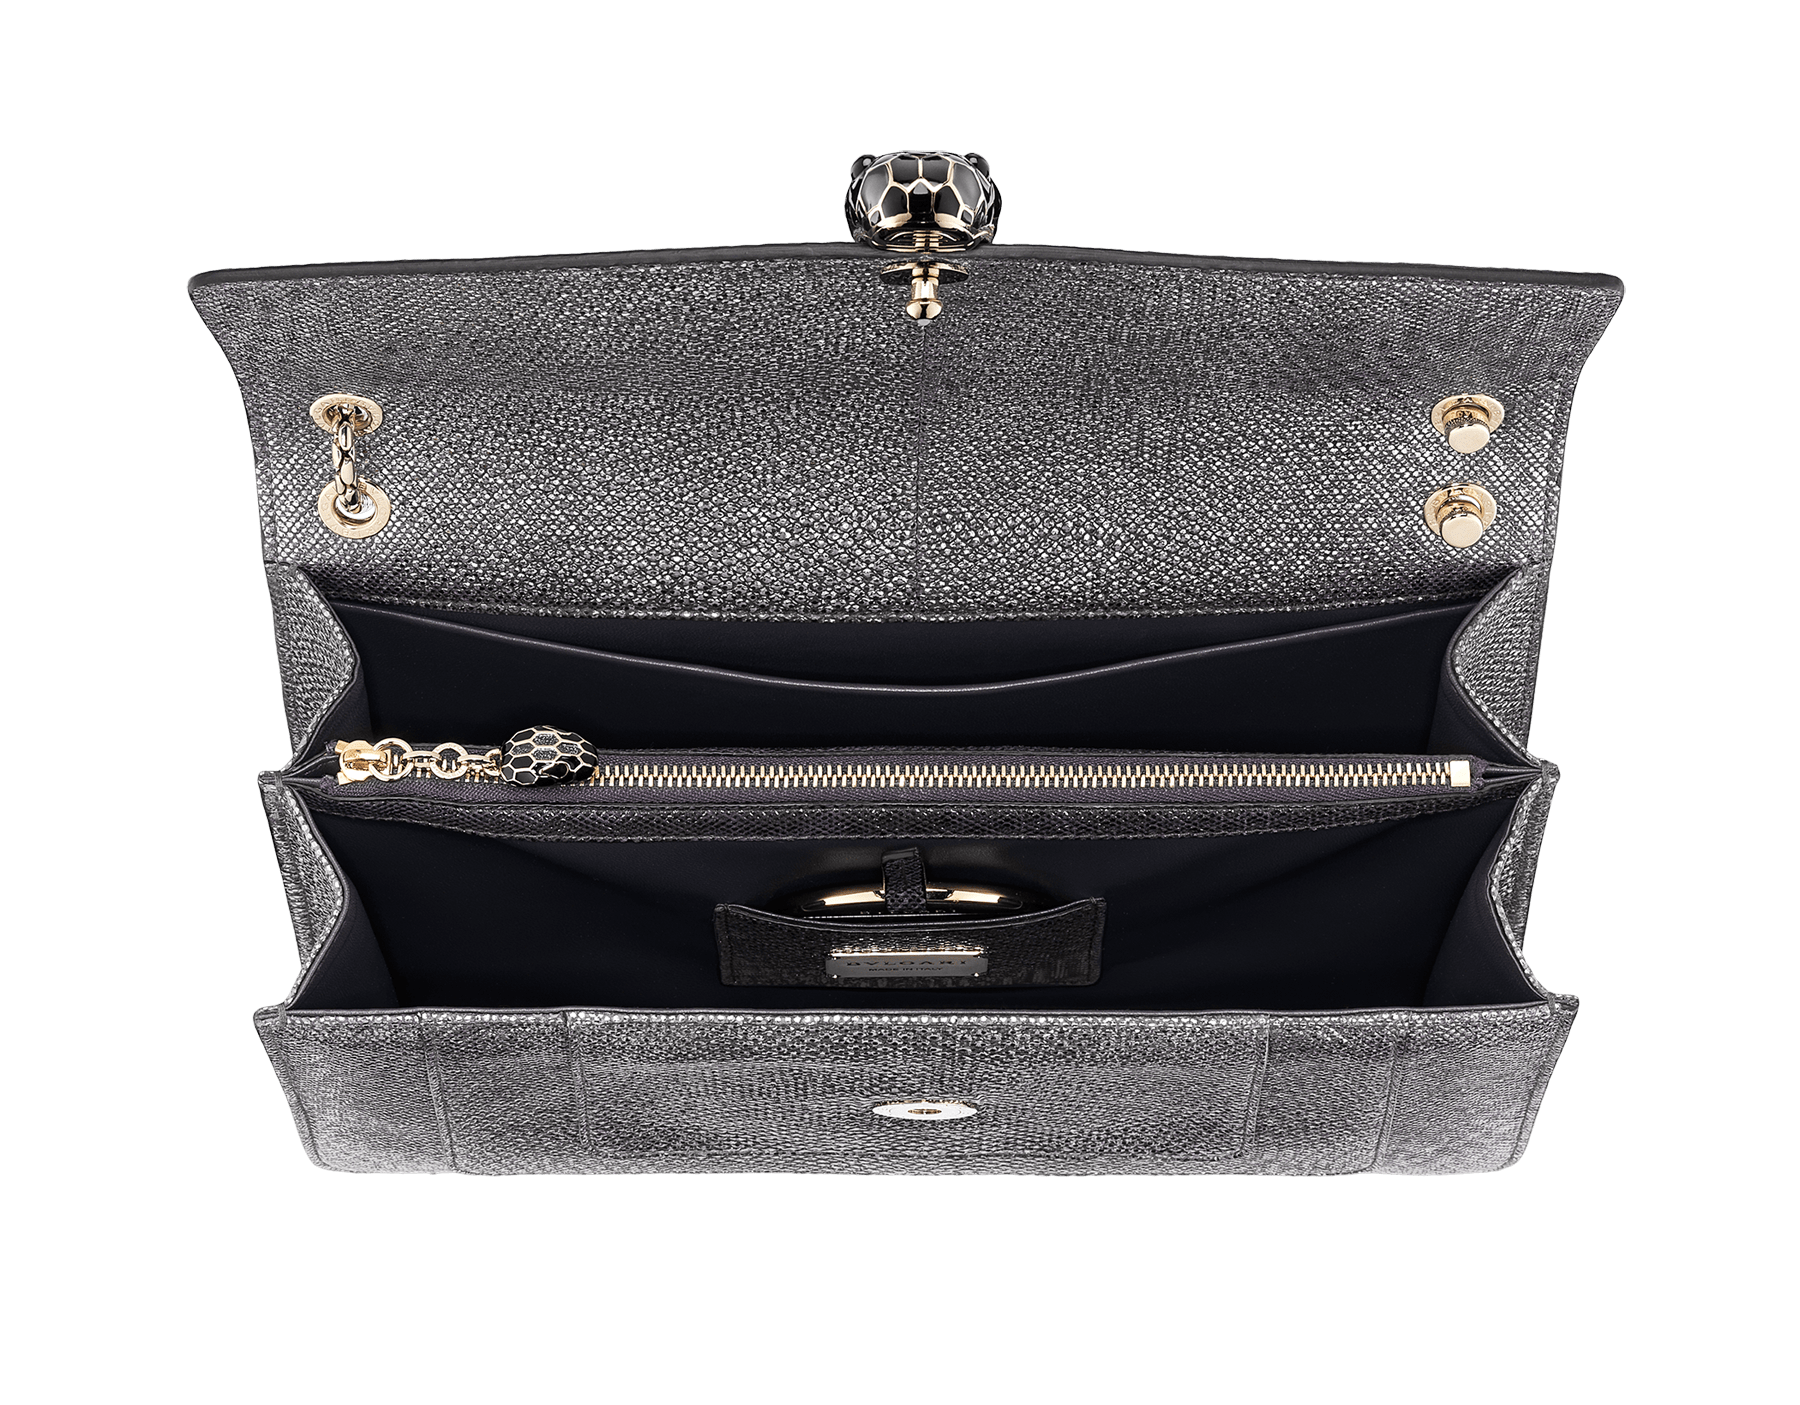 """""""Serpenti Forever"""" shoulder bag in Charcoal Diamond grey metallic karung skin with Charcoal Diamond grey nappa leather internal lining. Tempting snakehead closure light gold plated brass enriched with black and glitter Hawk's Eye grey enamel and black onyx eyes. 1089-MK image 2"""